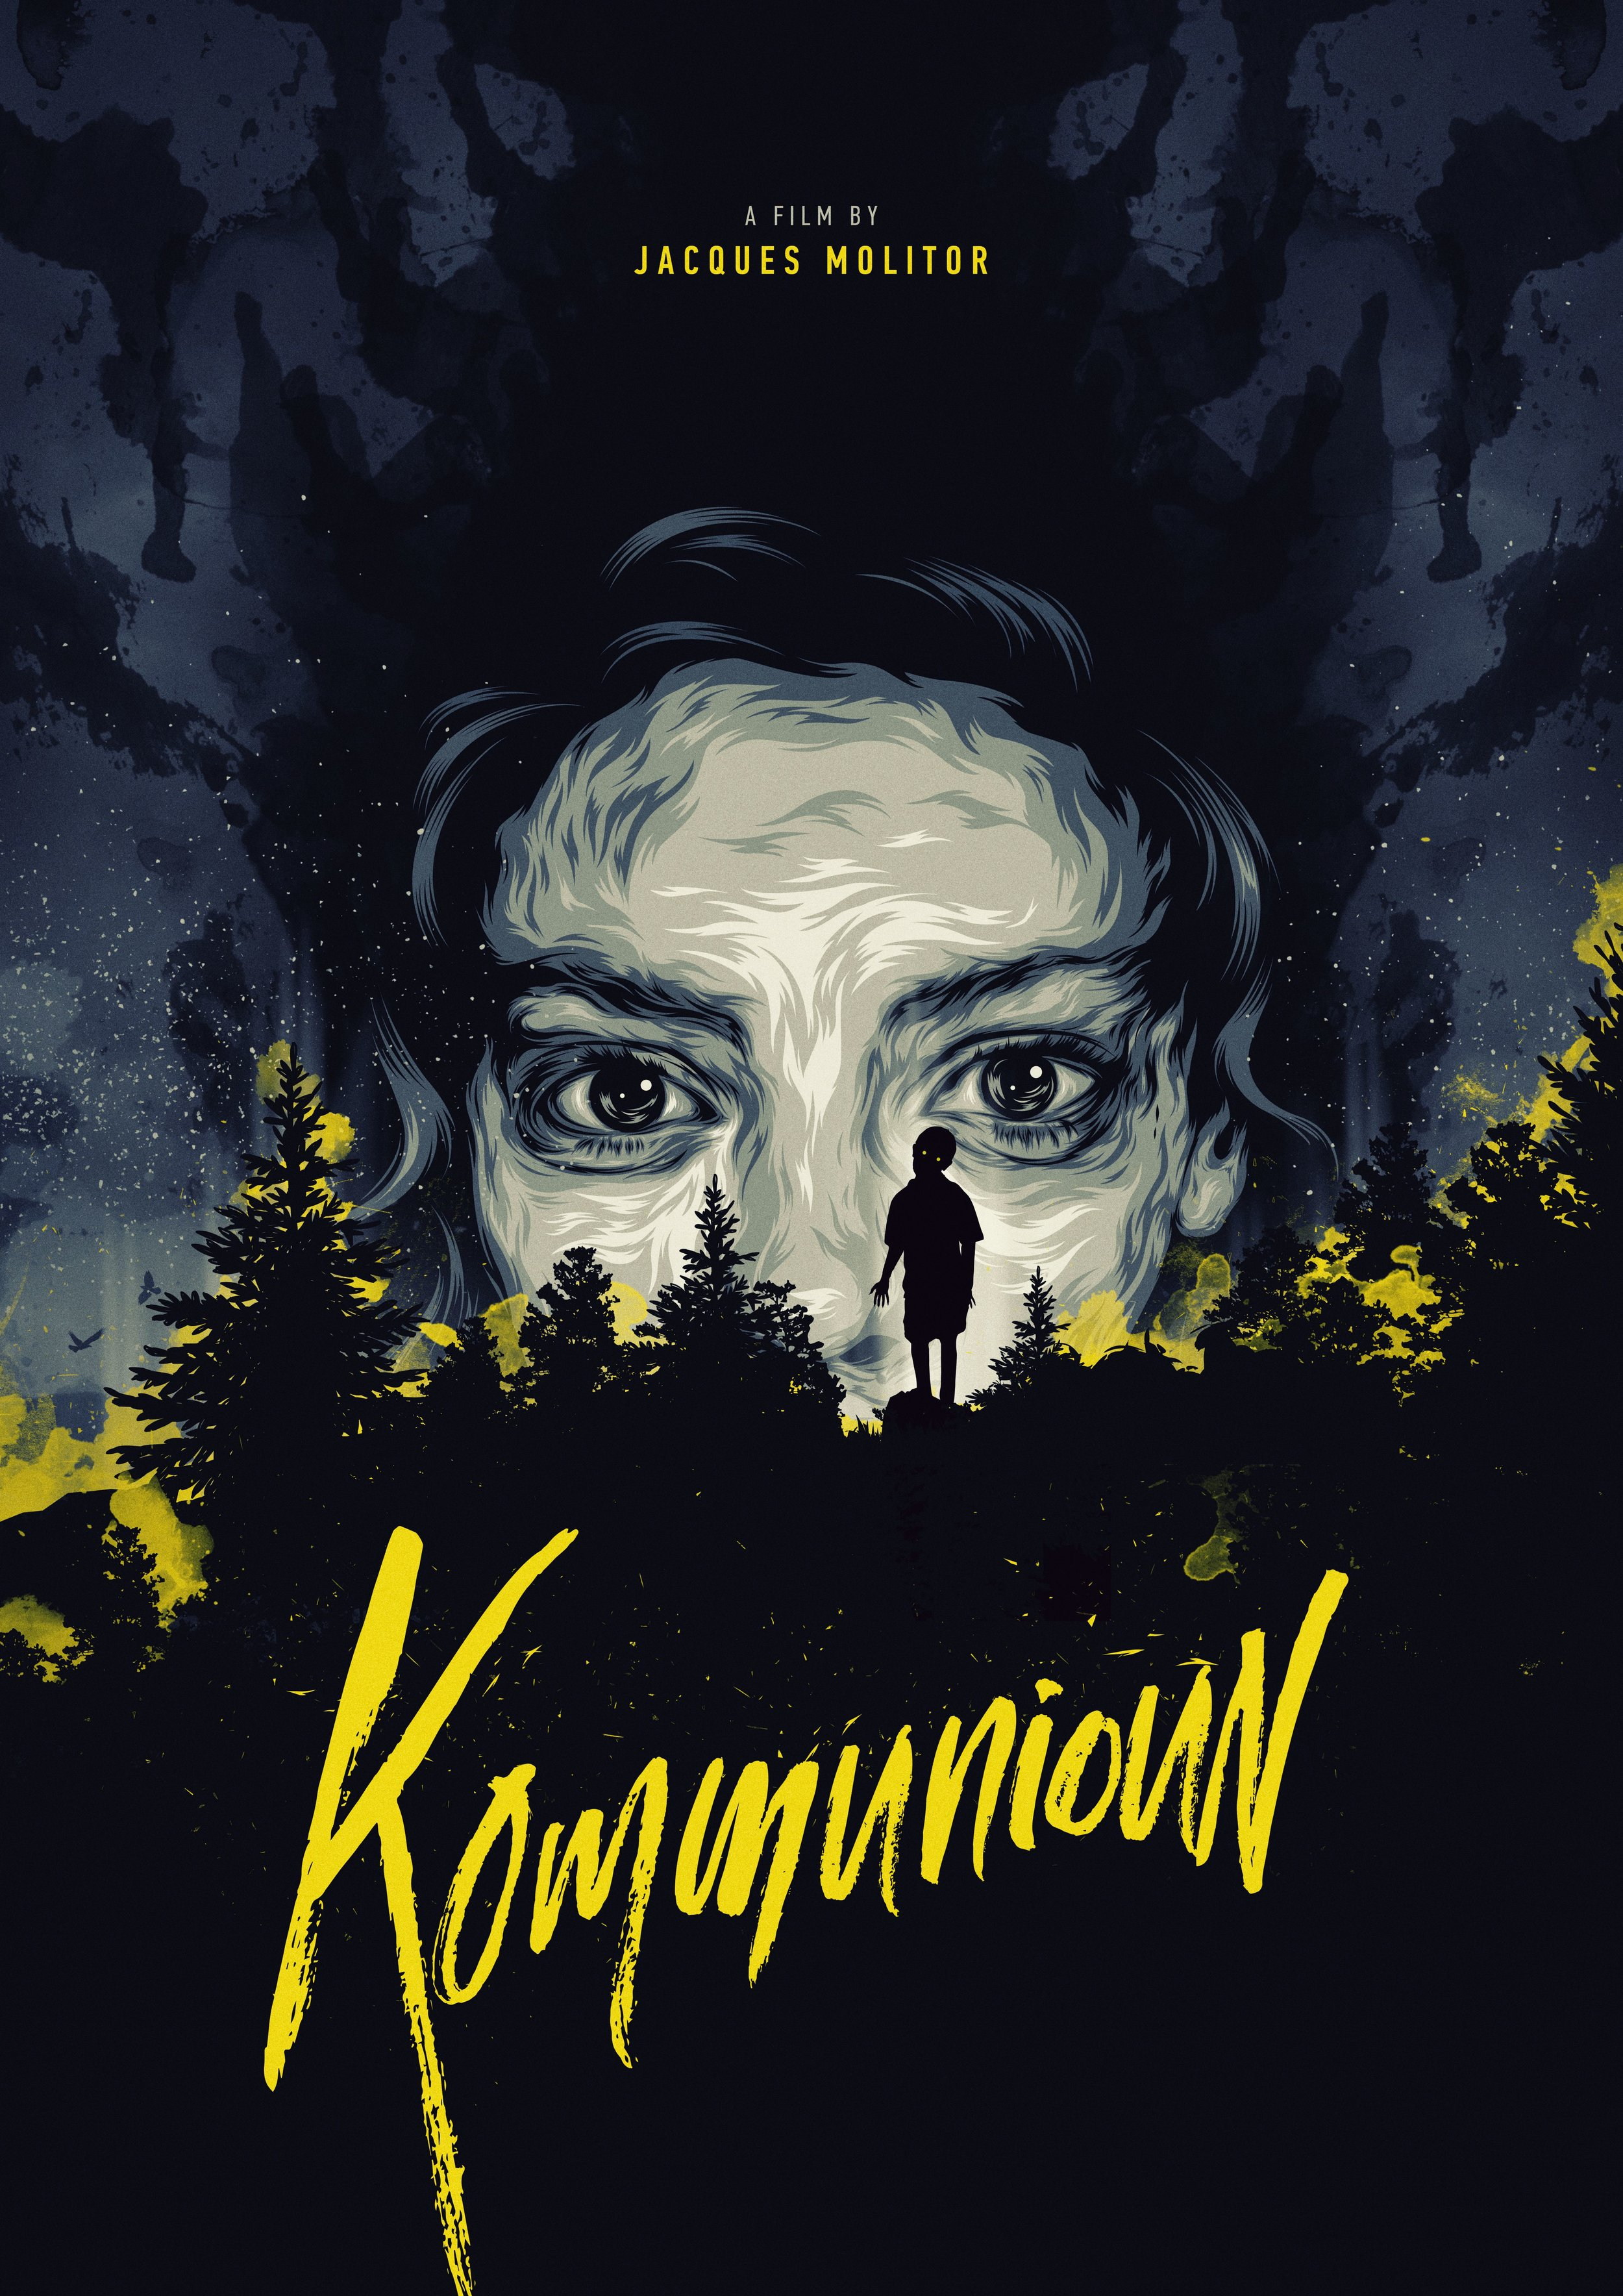 KOMMUNIOUN - Directed by JACQUES MOLITORScript by JACQUES MOLITORYear: 2019Original Version: LuxembourgishGenre: HorrorProduction companies: LES FILMS FAUVES (LU)